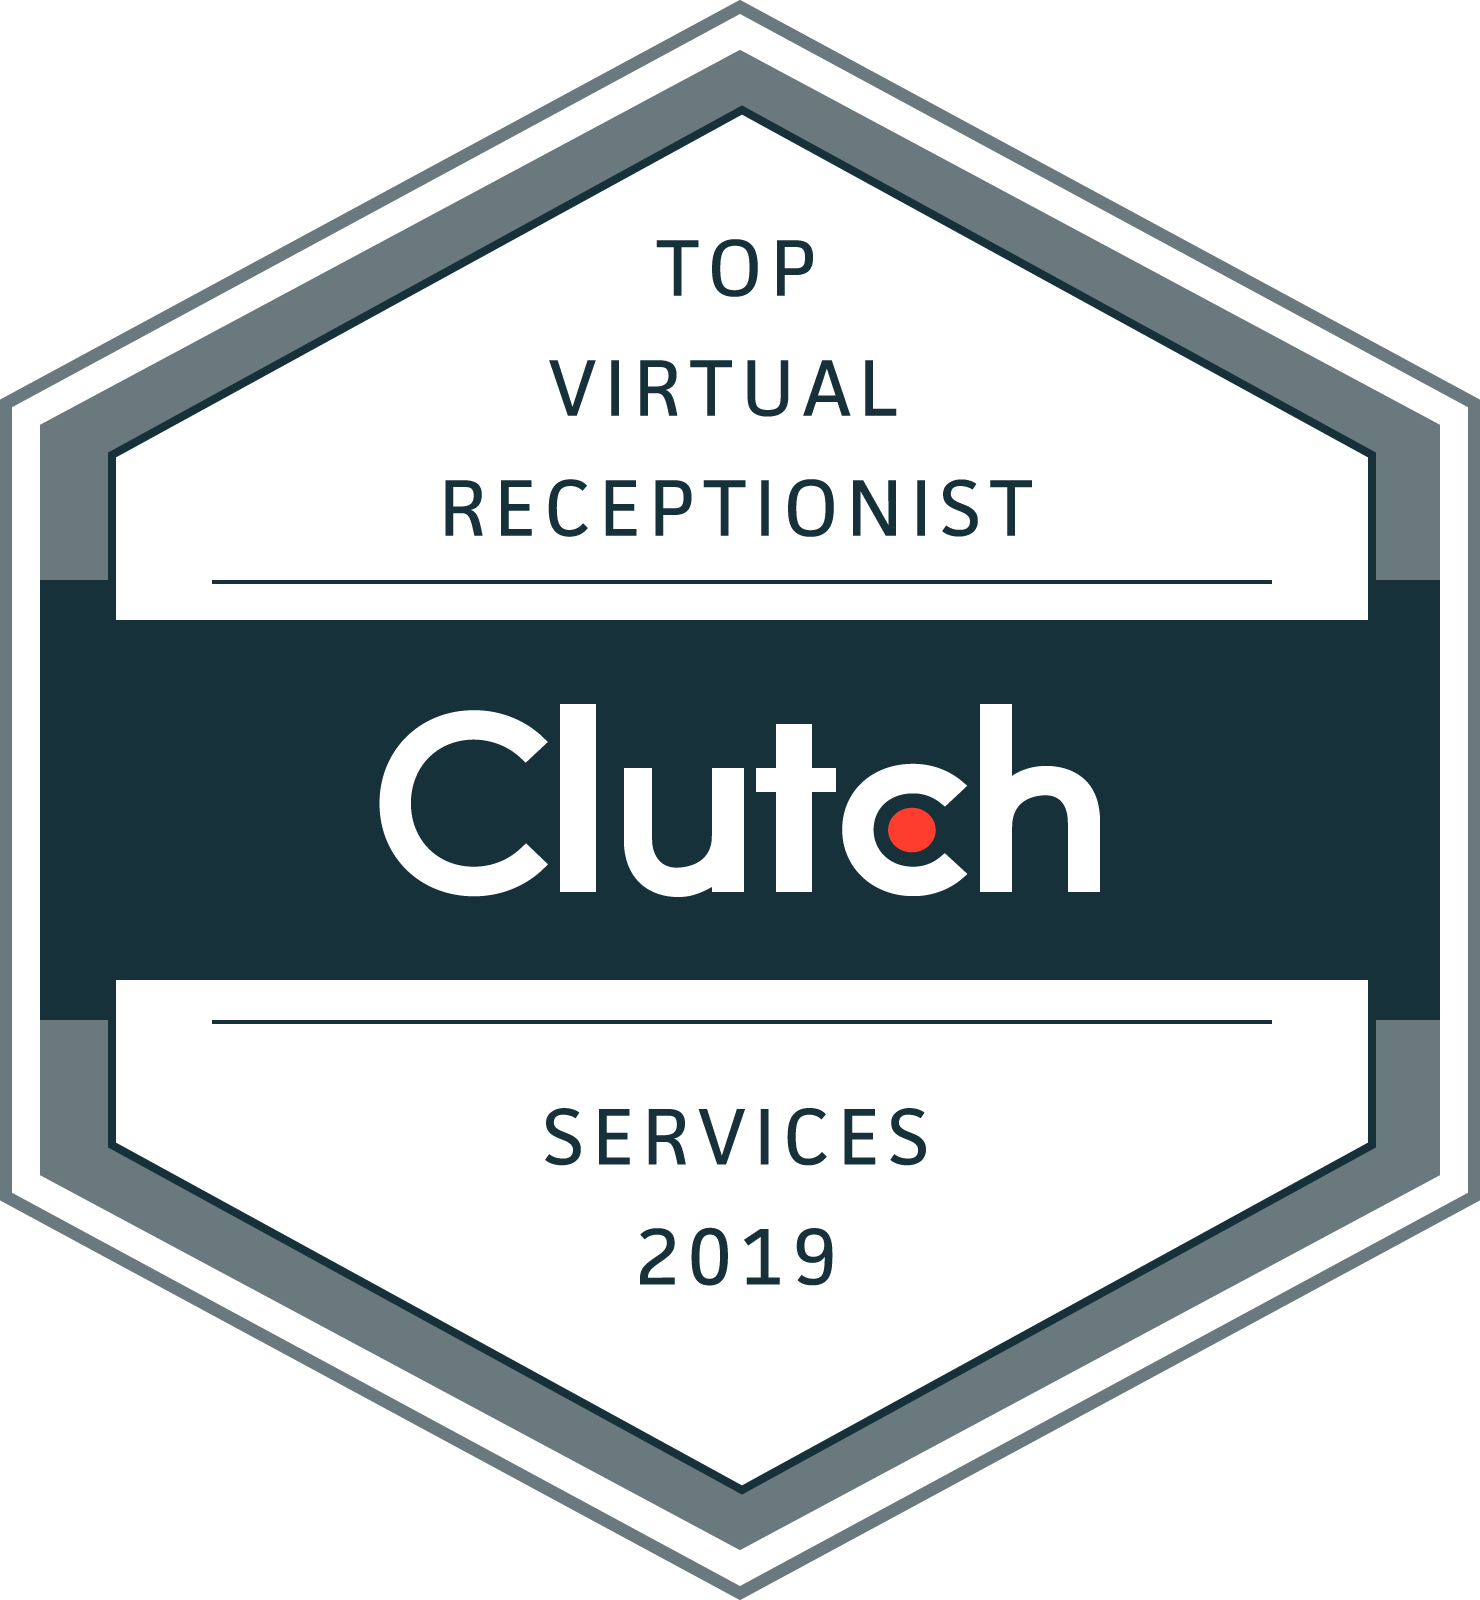 Clutch top answering services 2019